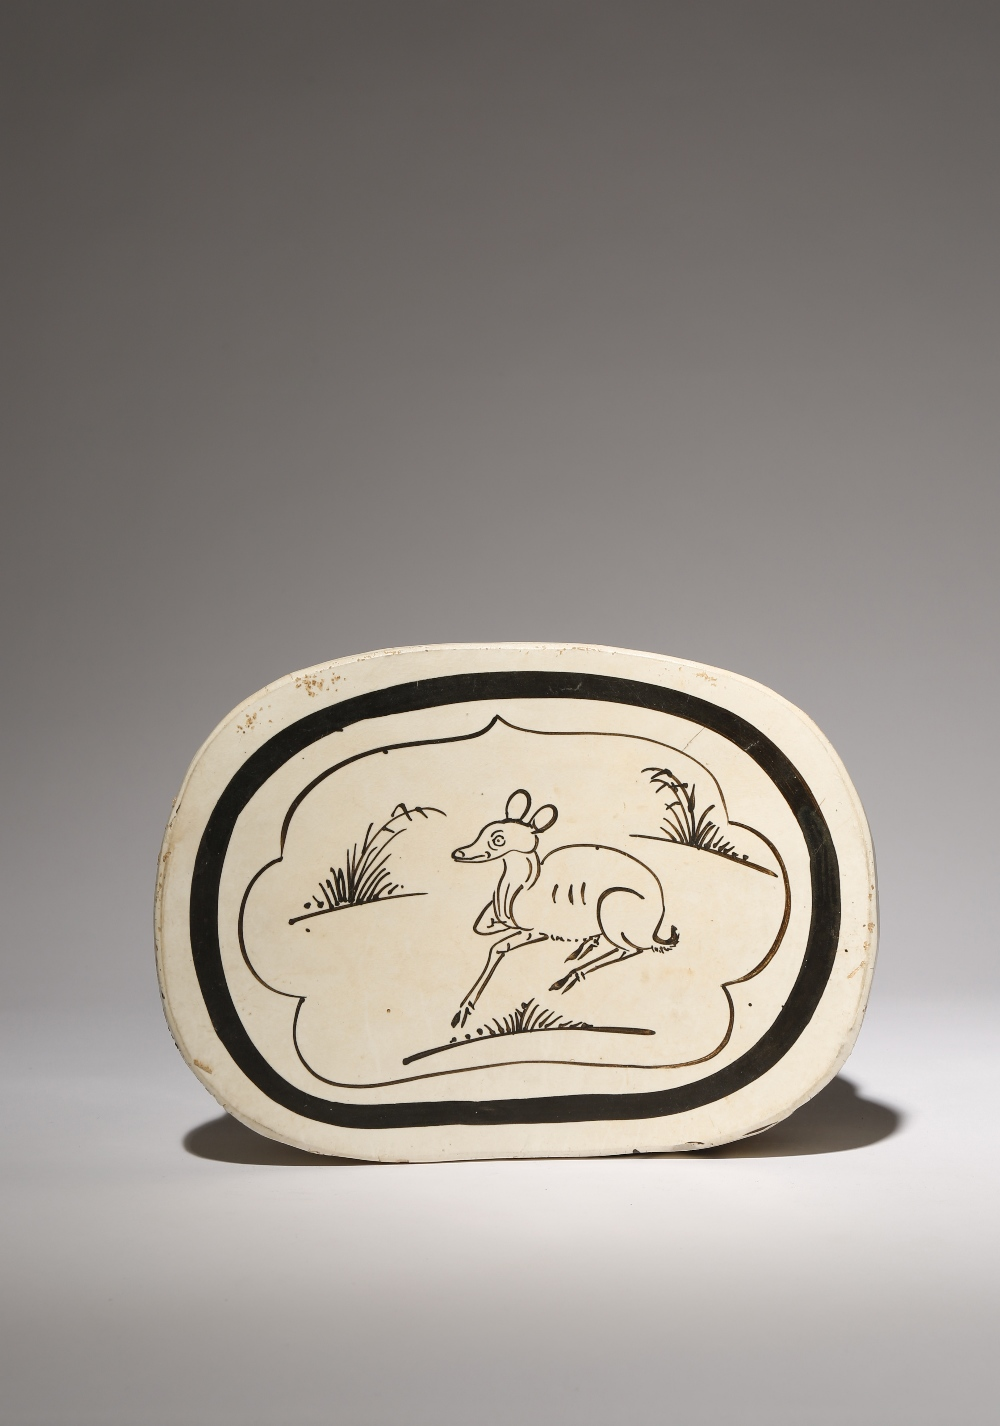 A CHINESE CIZHOU 'DEER' PILLOW PROBABLY SONG DYNASTY Painted in black with a panel enclosing a